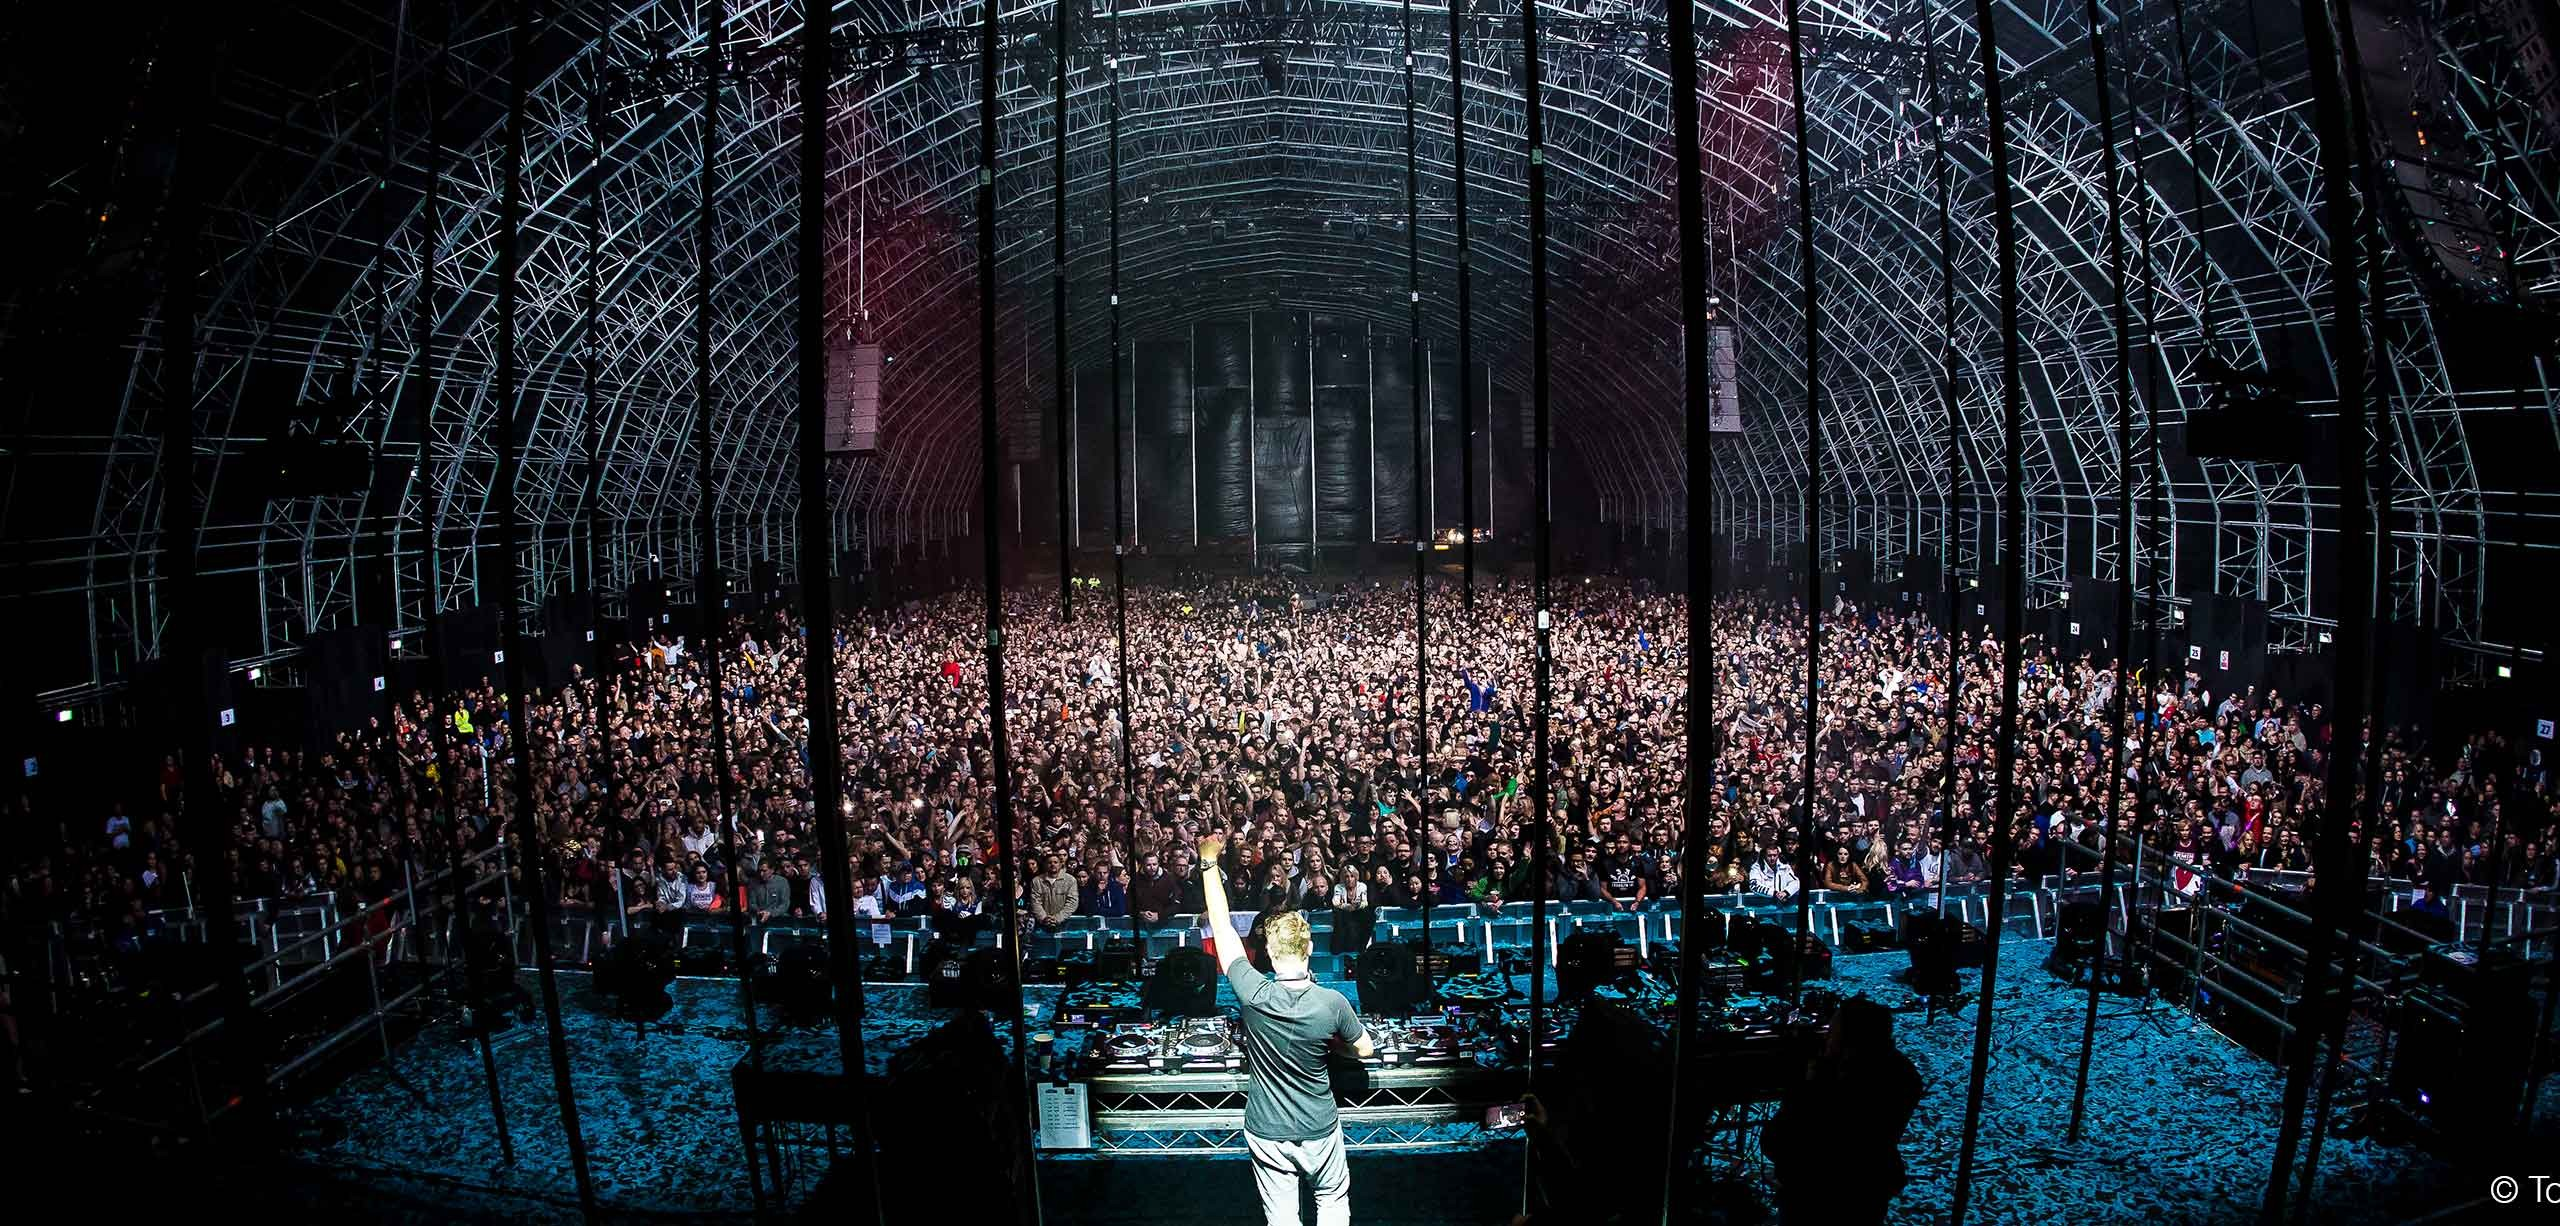 Dutch Dance - Sander van Doorn Creamfields Steel Yard Liverpool 2017 - photo by Tom Doms